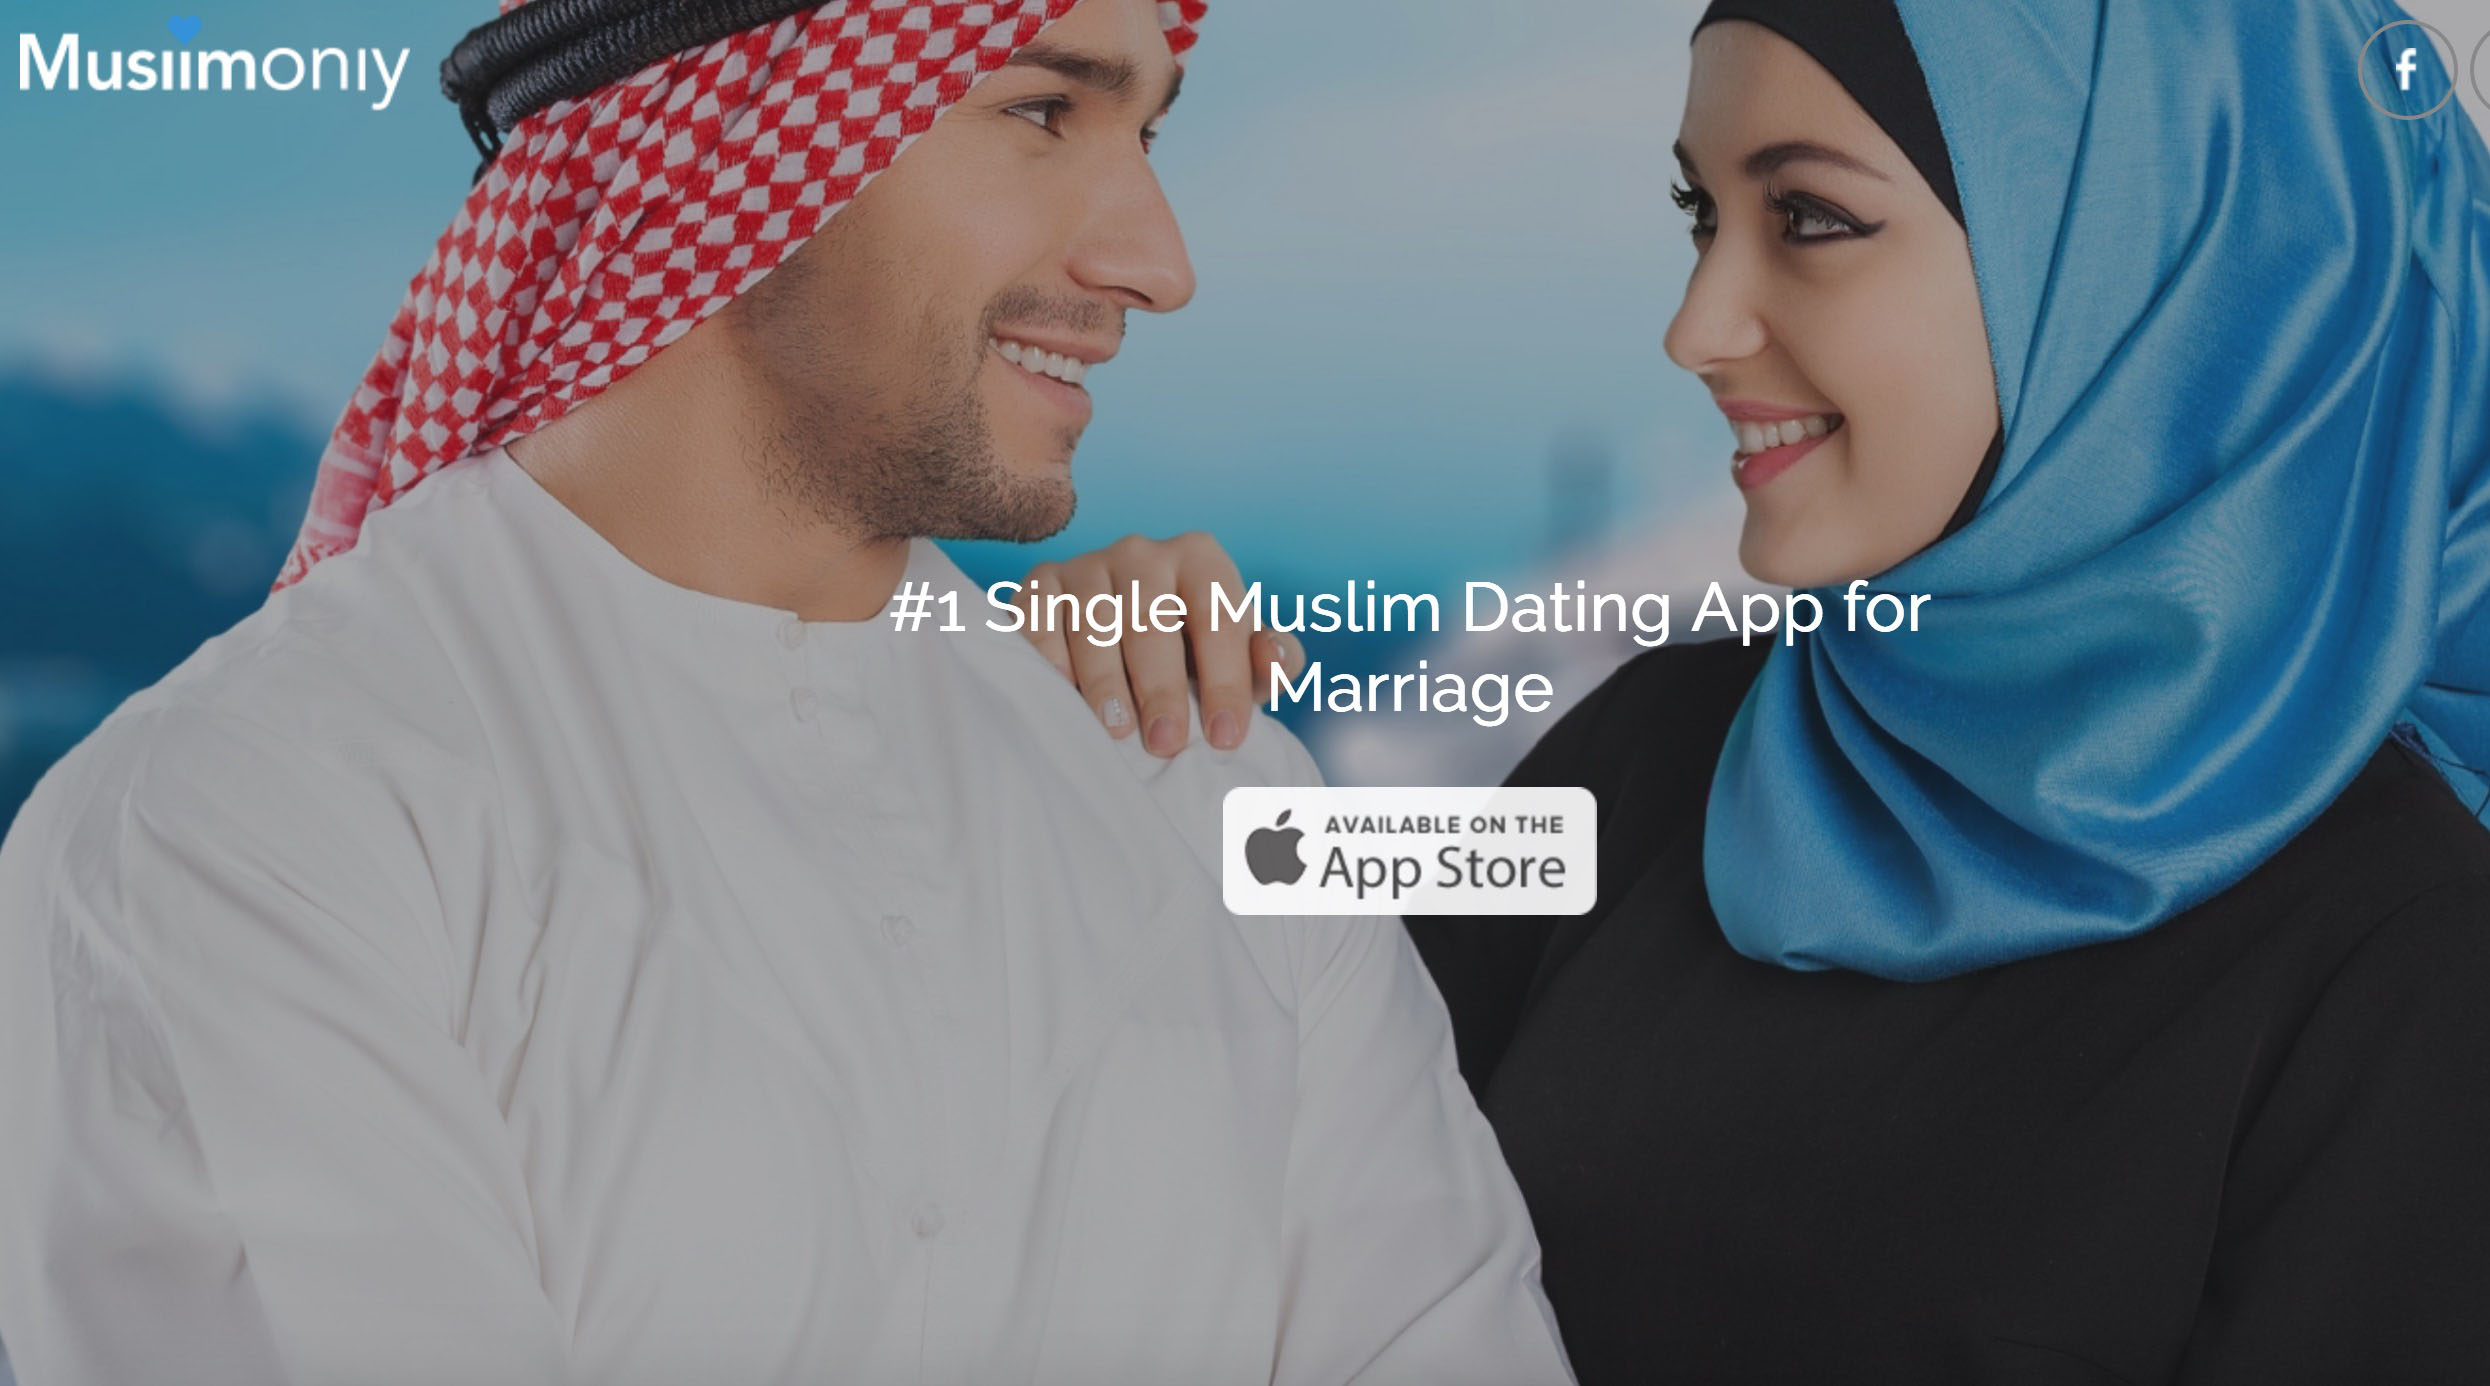 muslim singles in haxtun Find meetups about muslim singles and meet people in your local community  who share your interests.